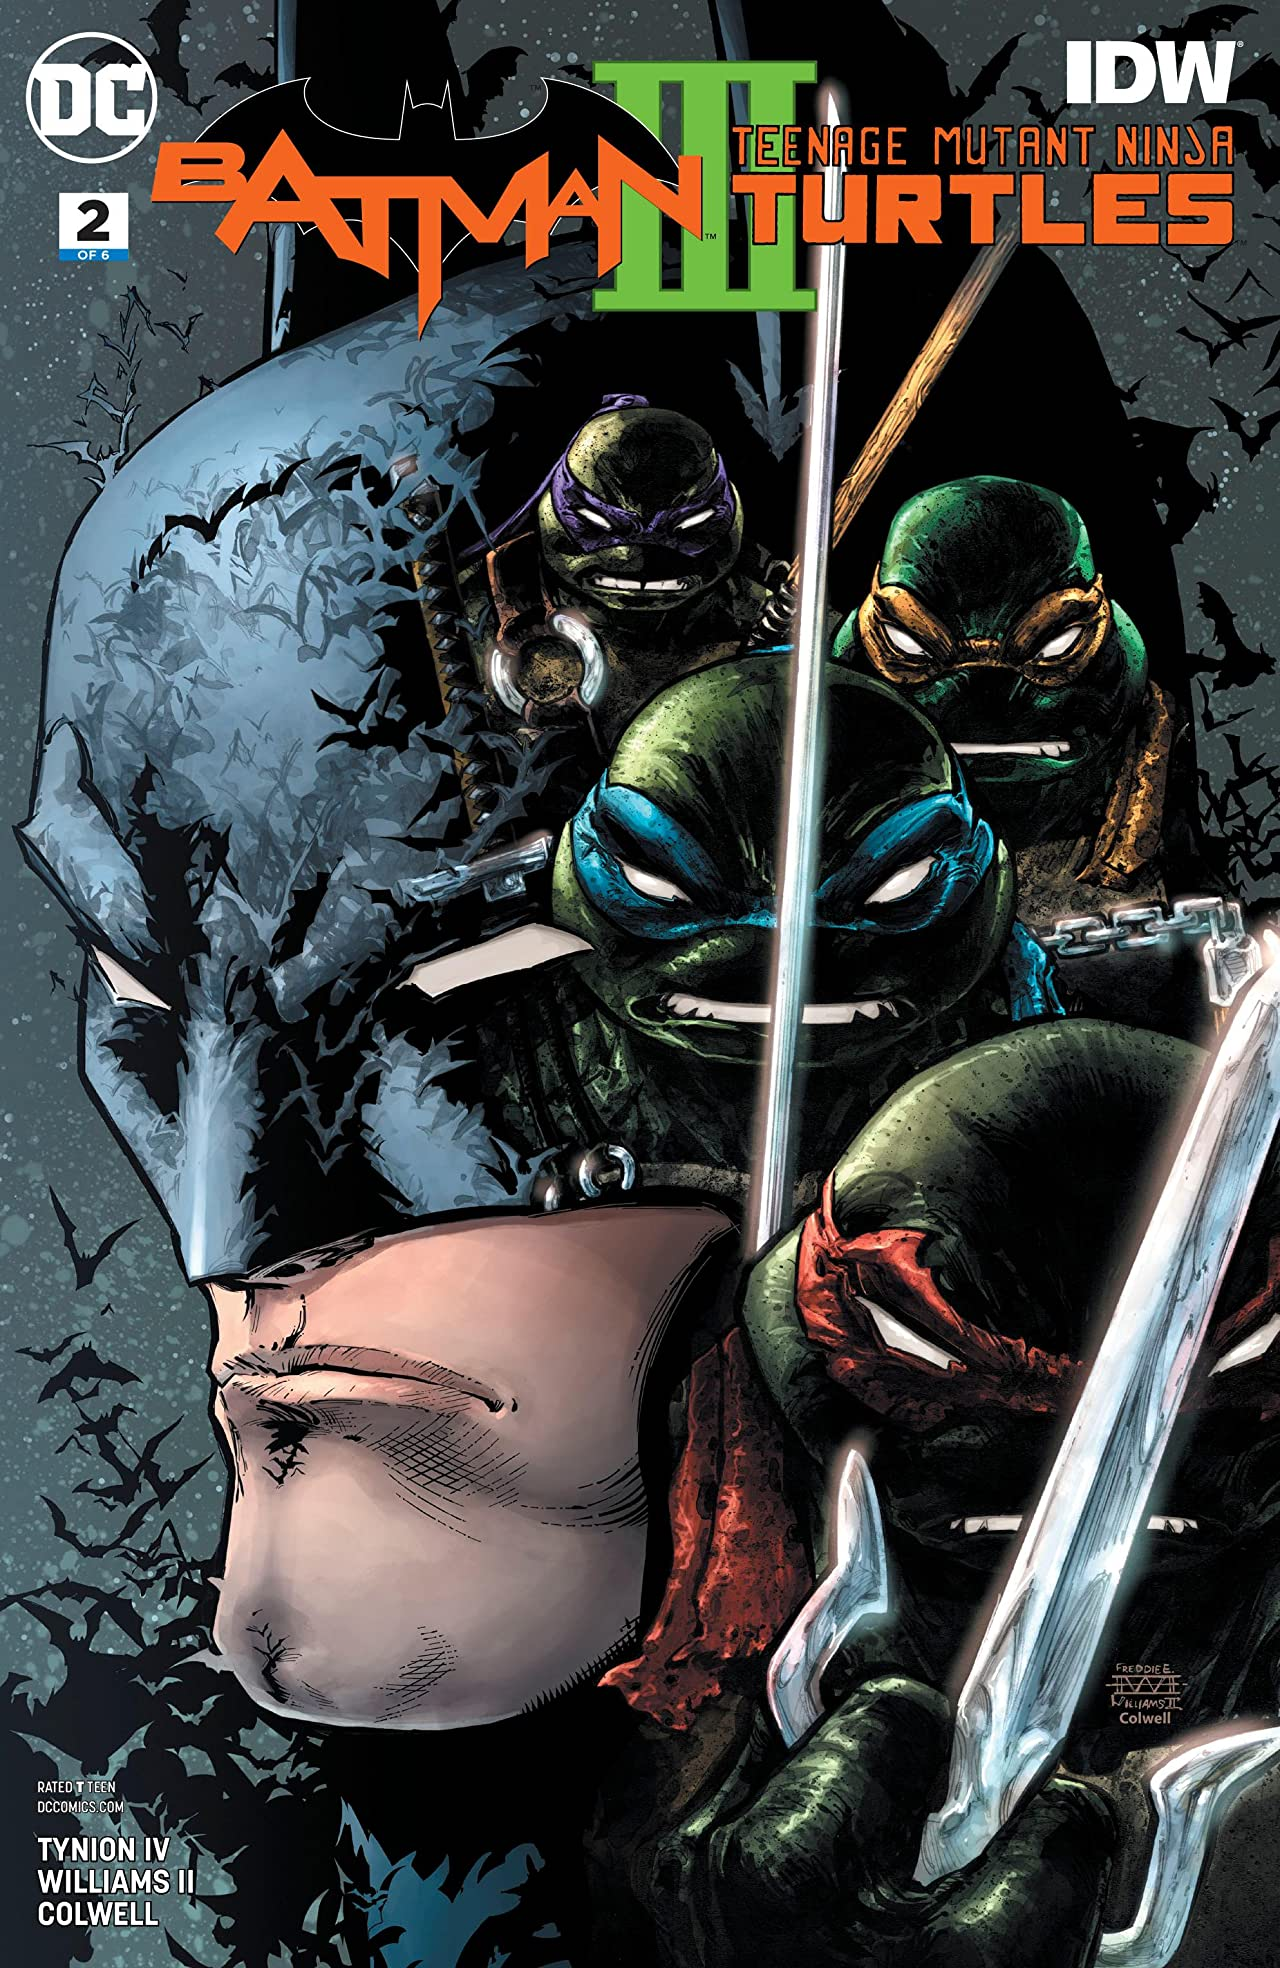 Batman/Teenage Mutant Ninja Turtles III (2019) #2